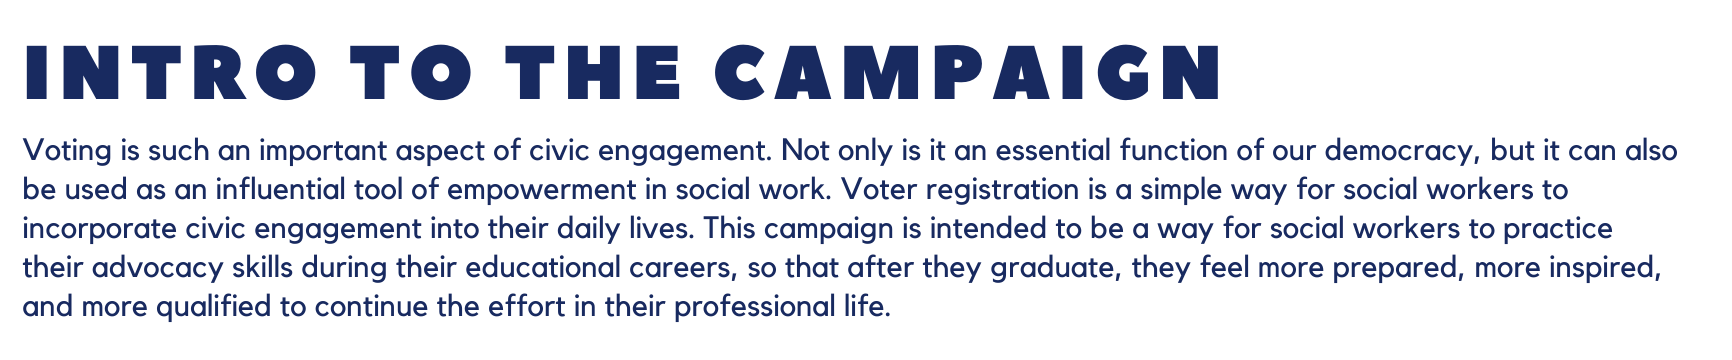 Intro to the Campaign: Voting is such an important aspect of civic engagement. Not only is it an essential function of our democracy, but it can also be used as an influential tool of empowerment in social work. Voter registration is a simple way for social workers to incorporate civic engagement into their daily lives. This campaign is intended to be a way for social workers to practice their advocacy skills during their educational careers, so that after they graduate, they feel more prepared, more inspired, and more qualified to continue the effort in their professional life.